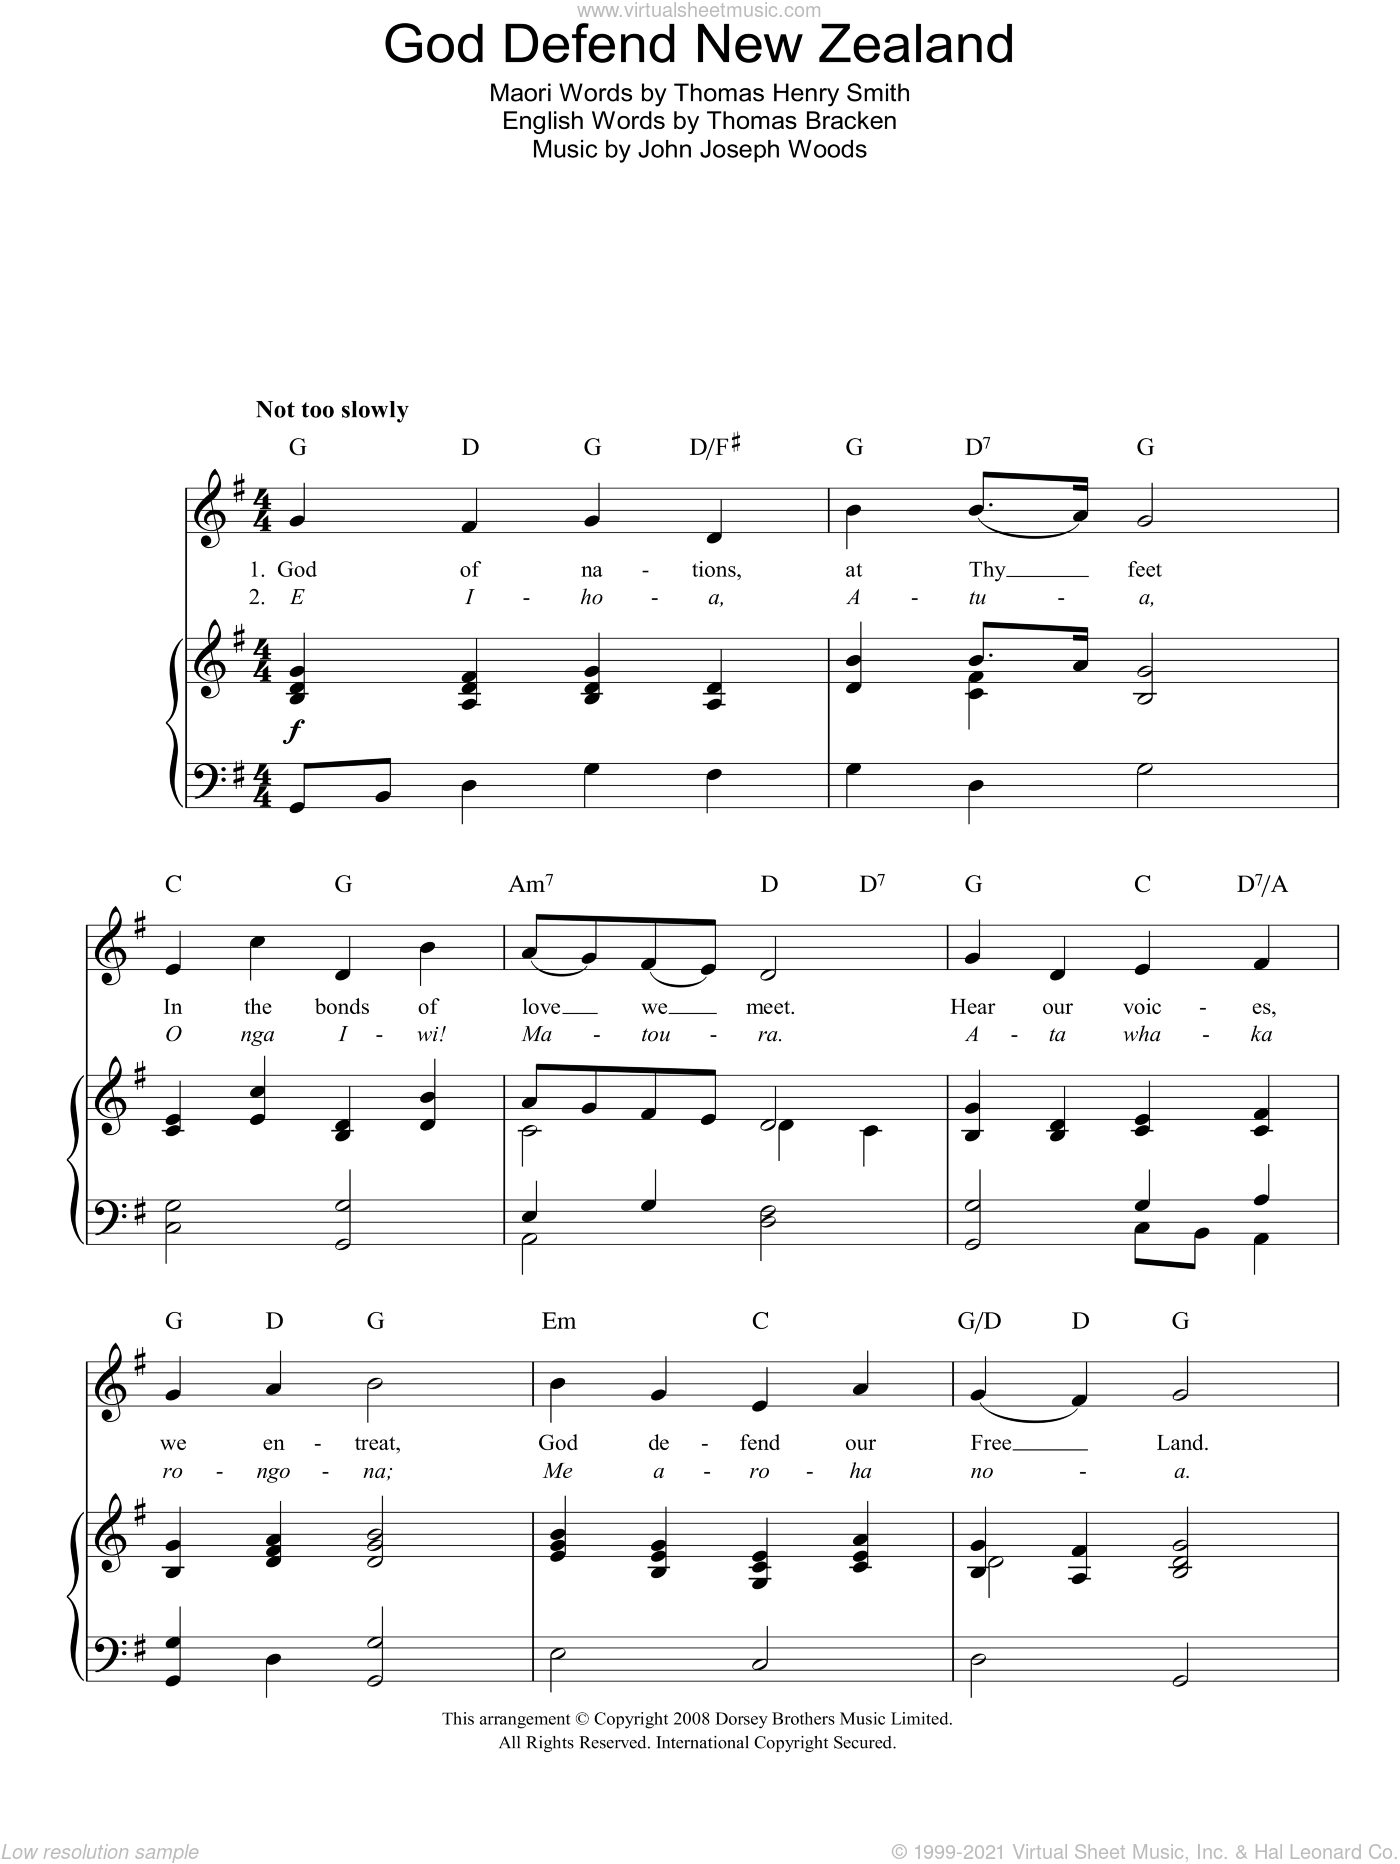 God Defend New Zealand (New Zealand National Anthem) sheet music for voice, piano or guitar by John Joseph Woods. Score Image Preview.